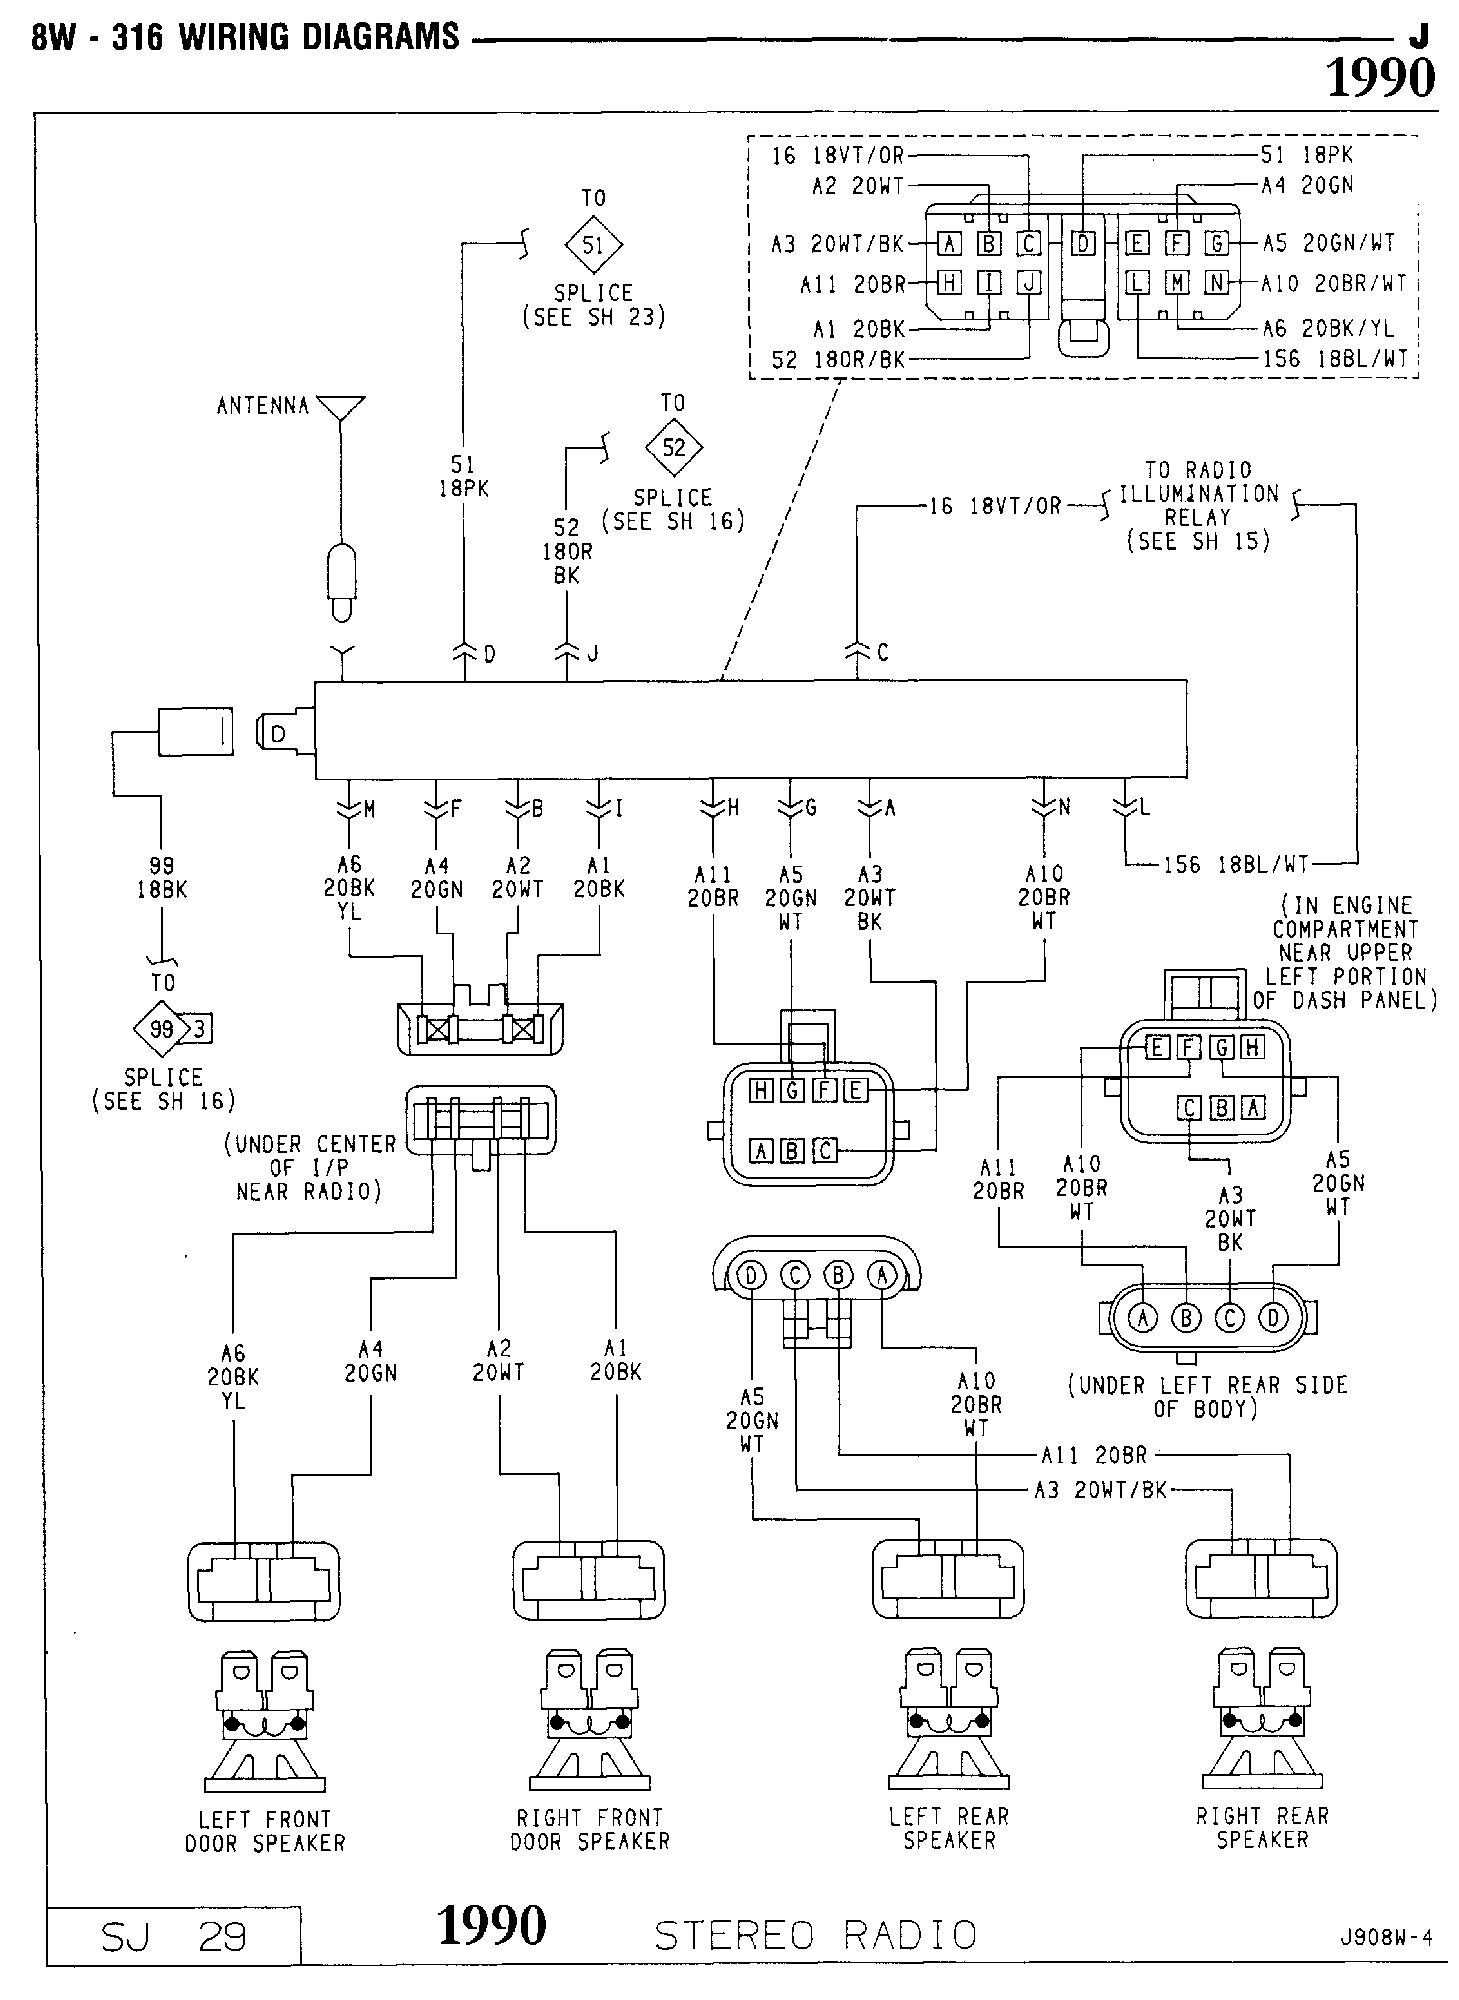 88 jeep yj wiring diagram - dolgular, Wiring diagram